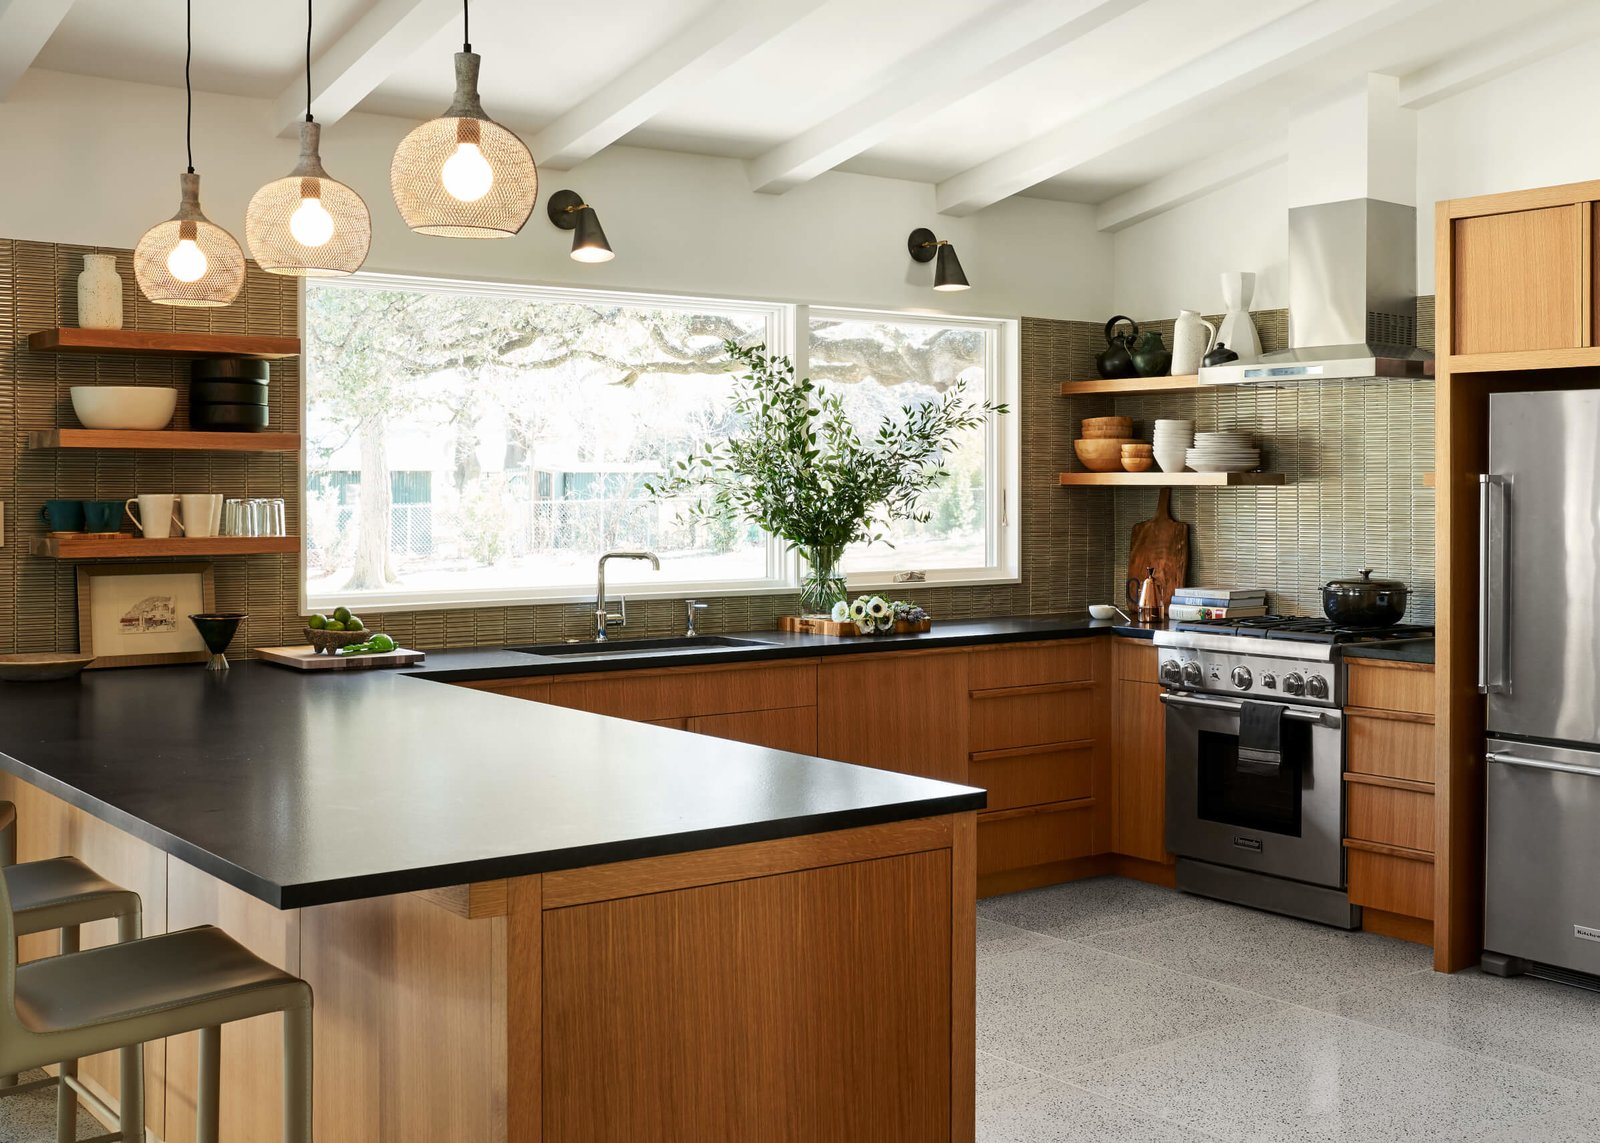 Zilker Park MCM Mark Ashby kitchen